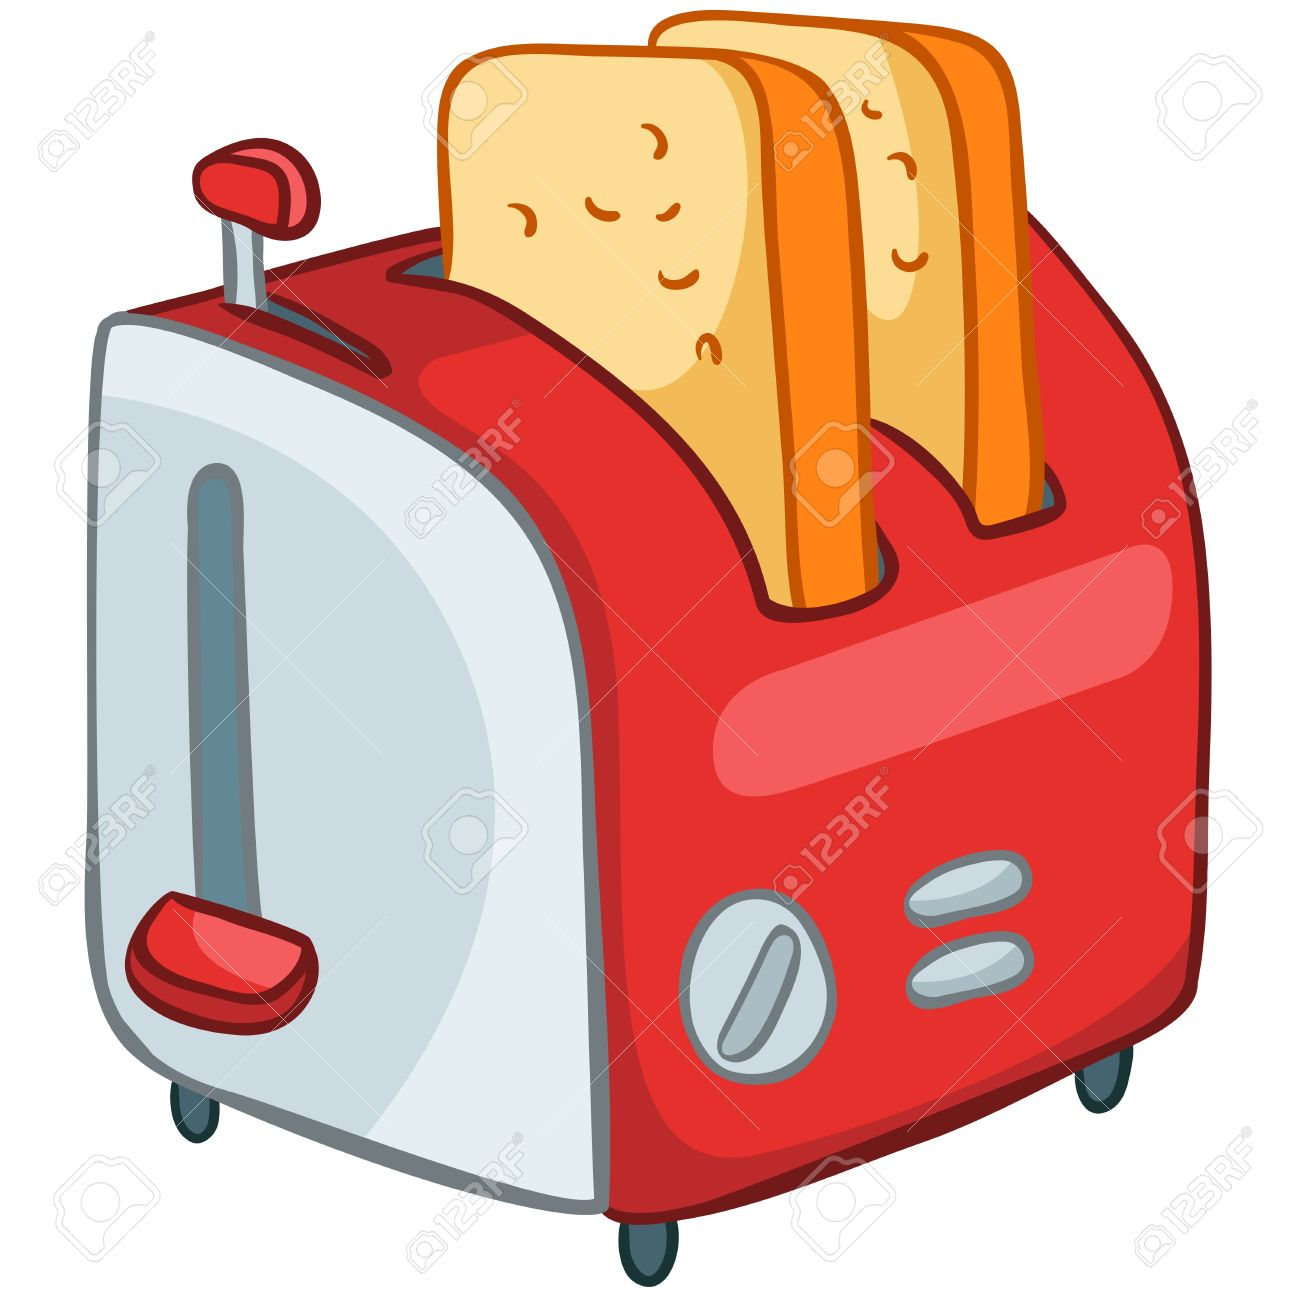 clip transparent Toaster clipart toster. Collection of free download